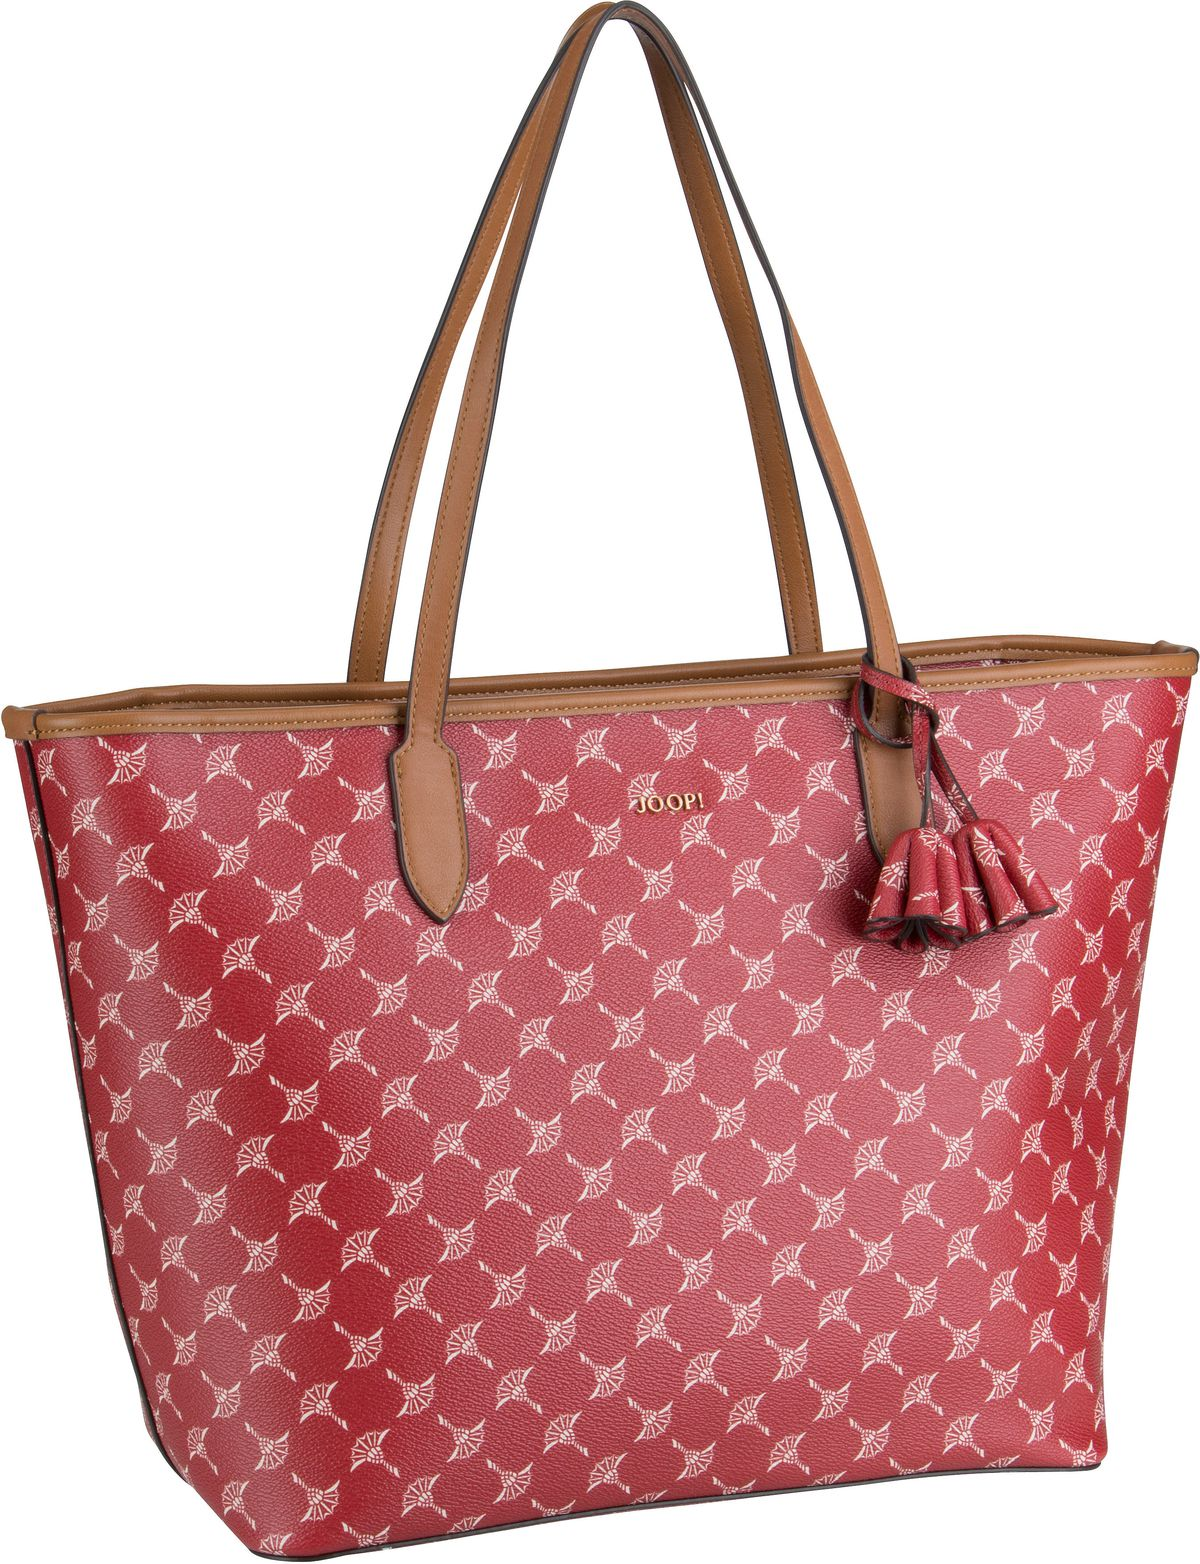 Handtasche Cortina Lara Shopper LHZ Red